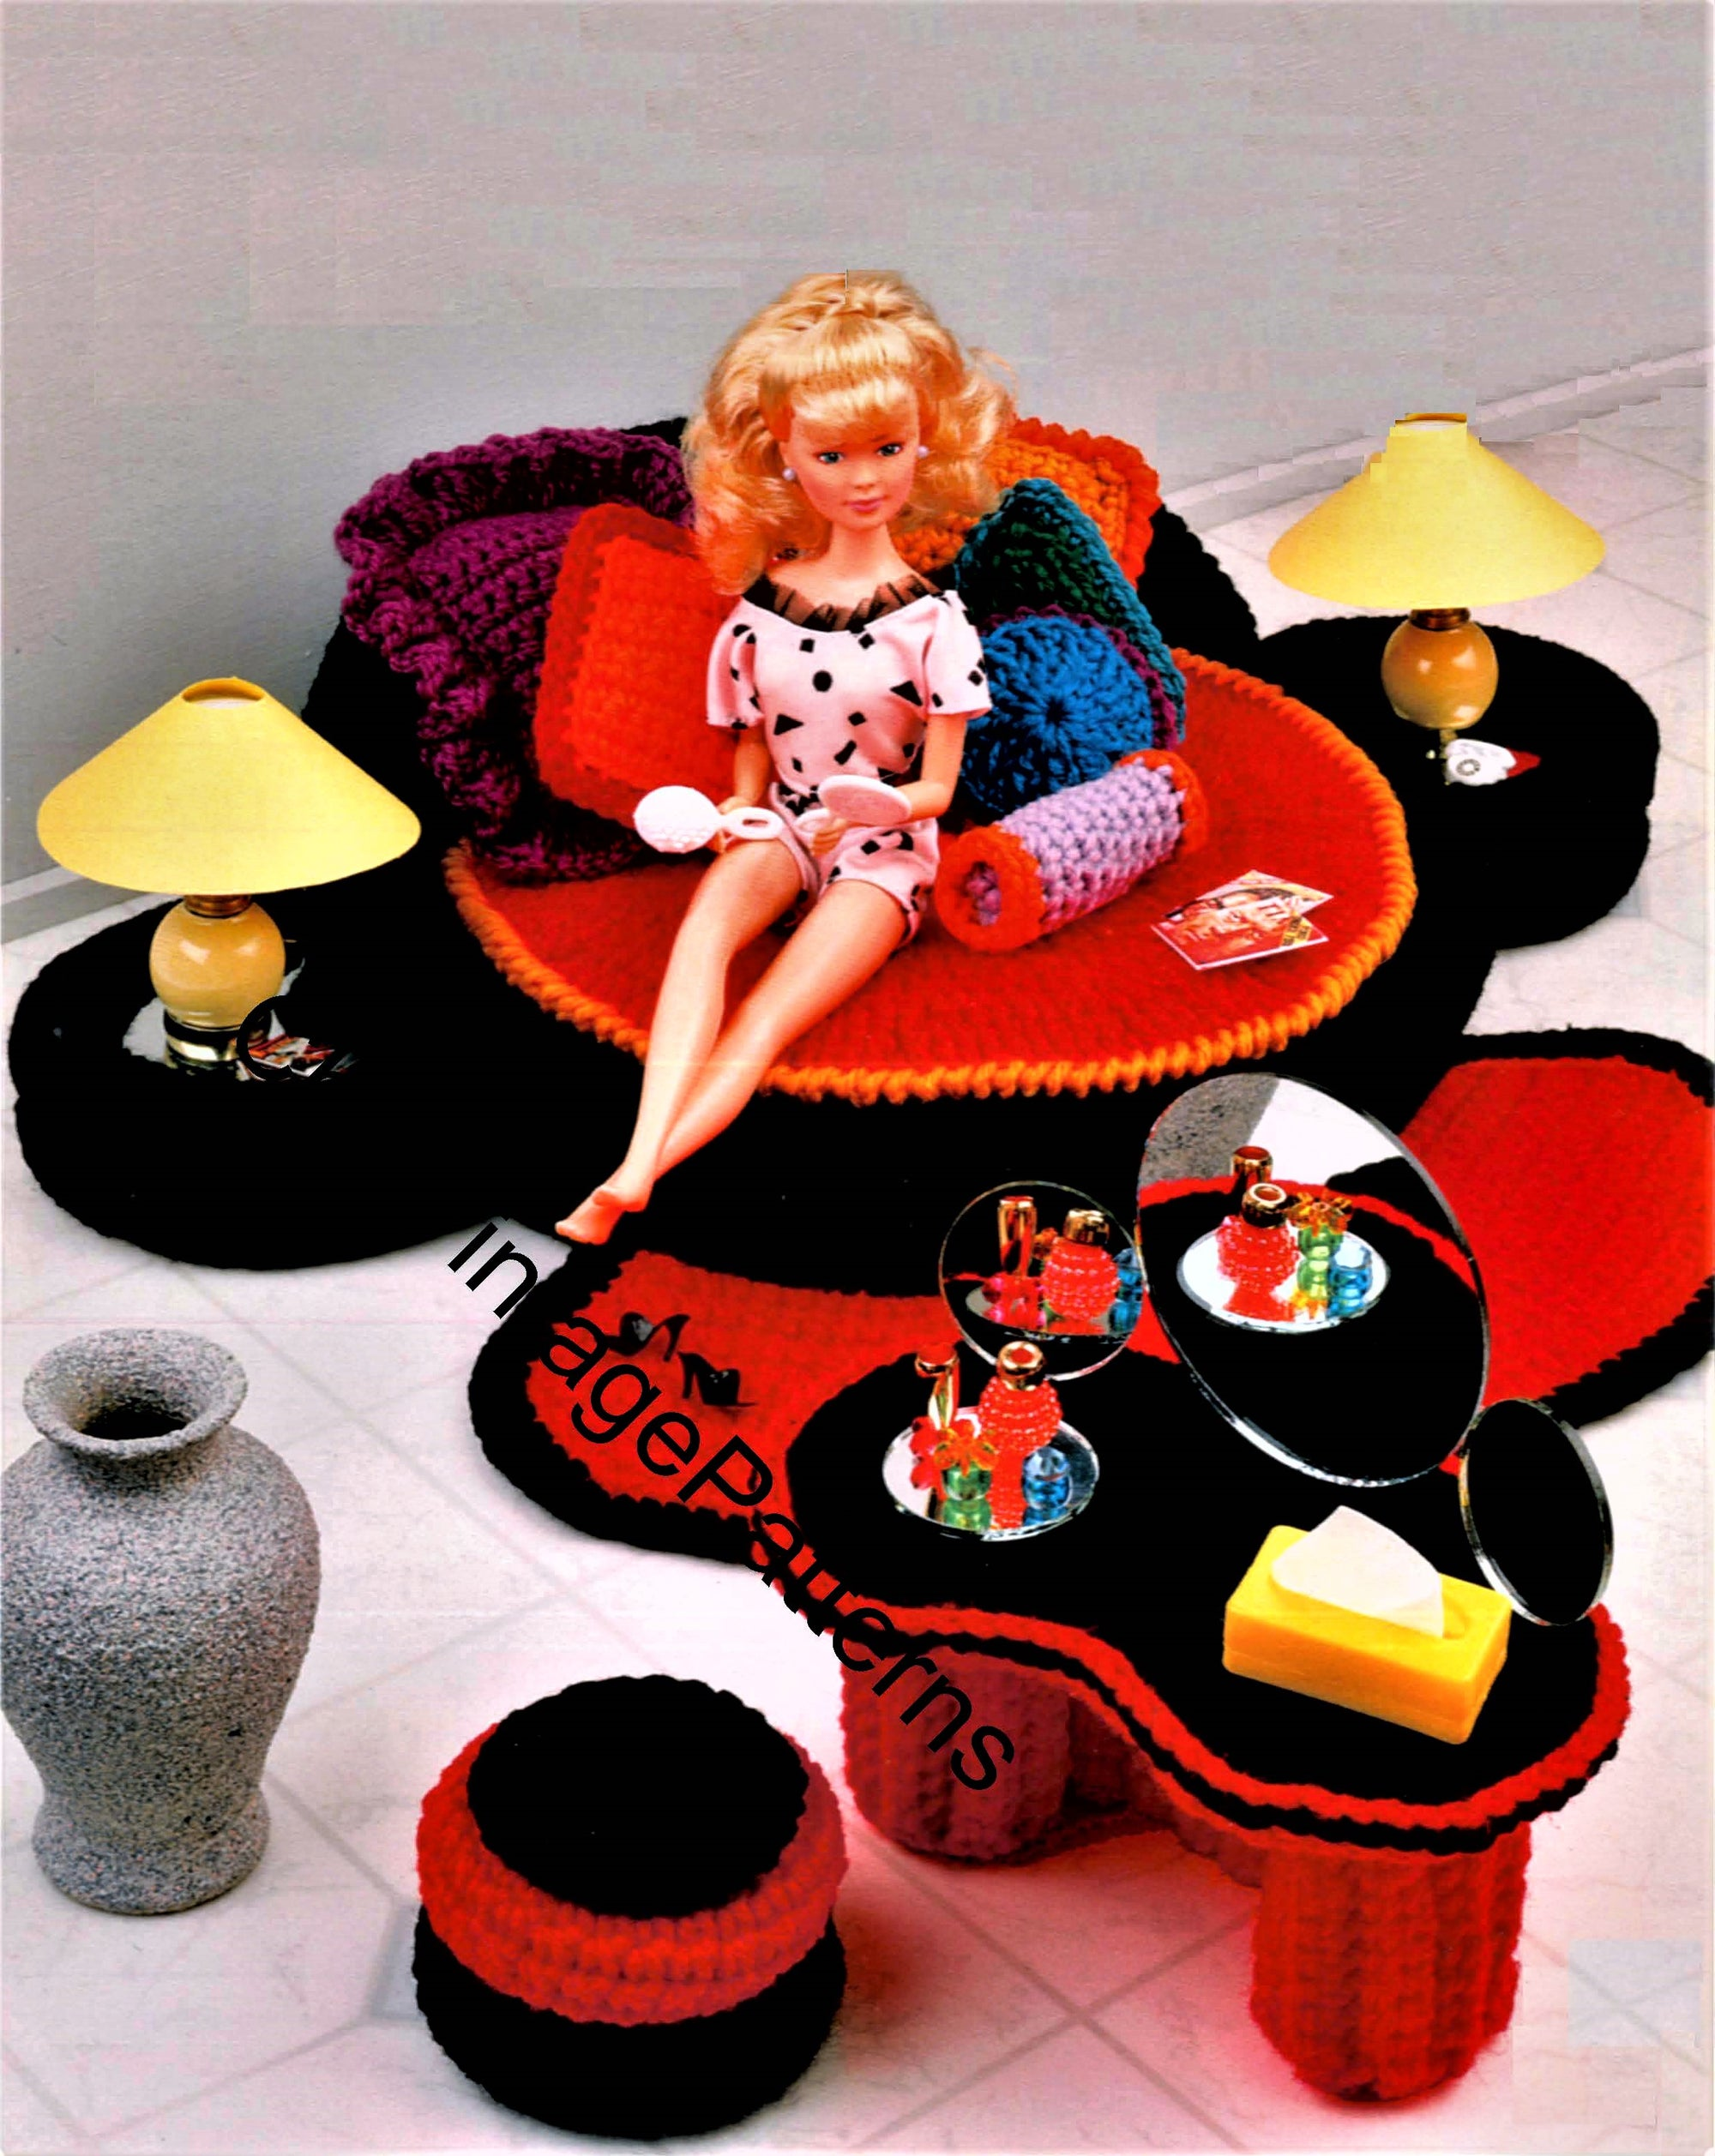 Dolls House Pattern, Crochet Bedroom Furniture, 11.1/2 inch Doll, Instant Download